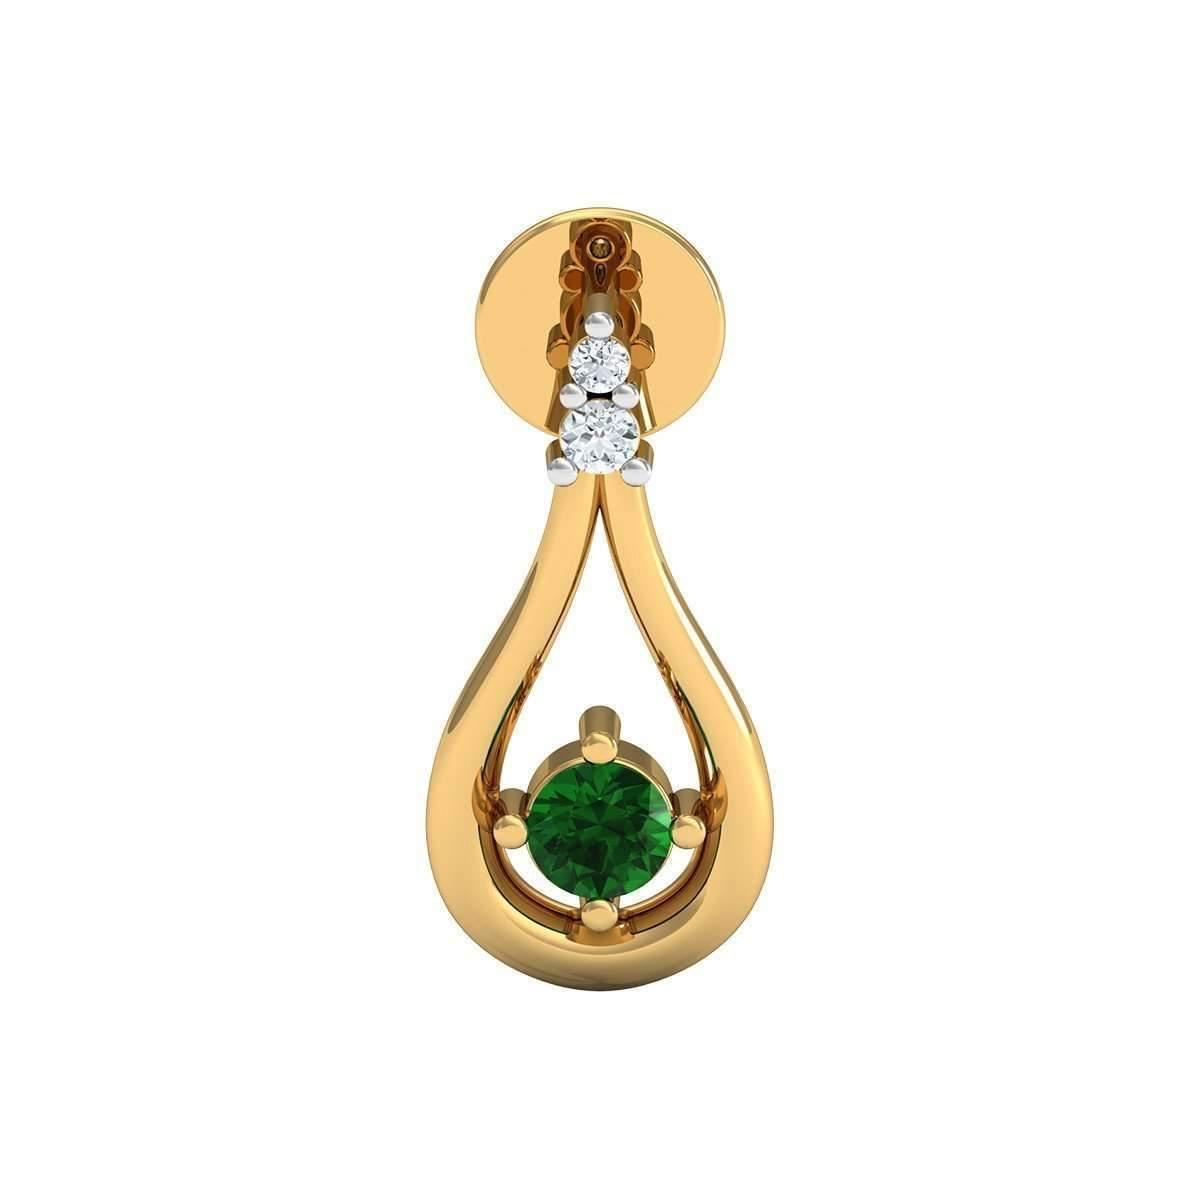 Diamoire Jewels Nature Inspired SI3 Diamond and Emerald Prong Earrings 14kt Yellow Gold 2L6Hs6sP